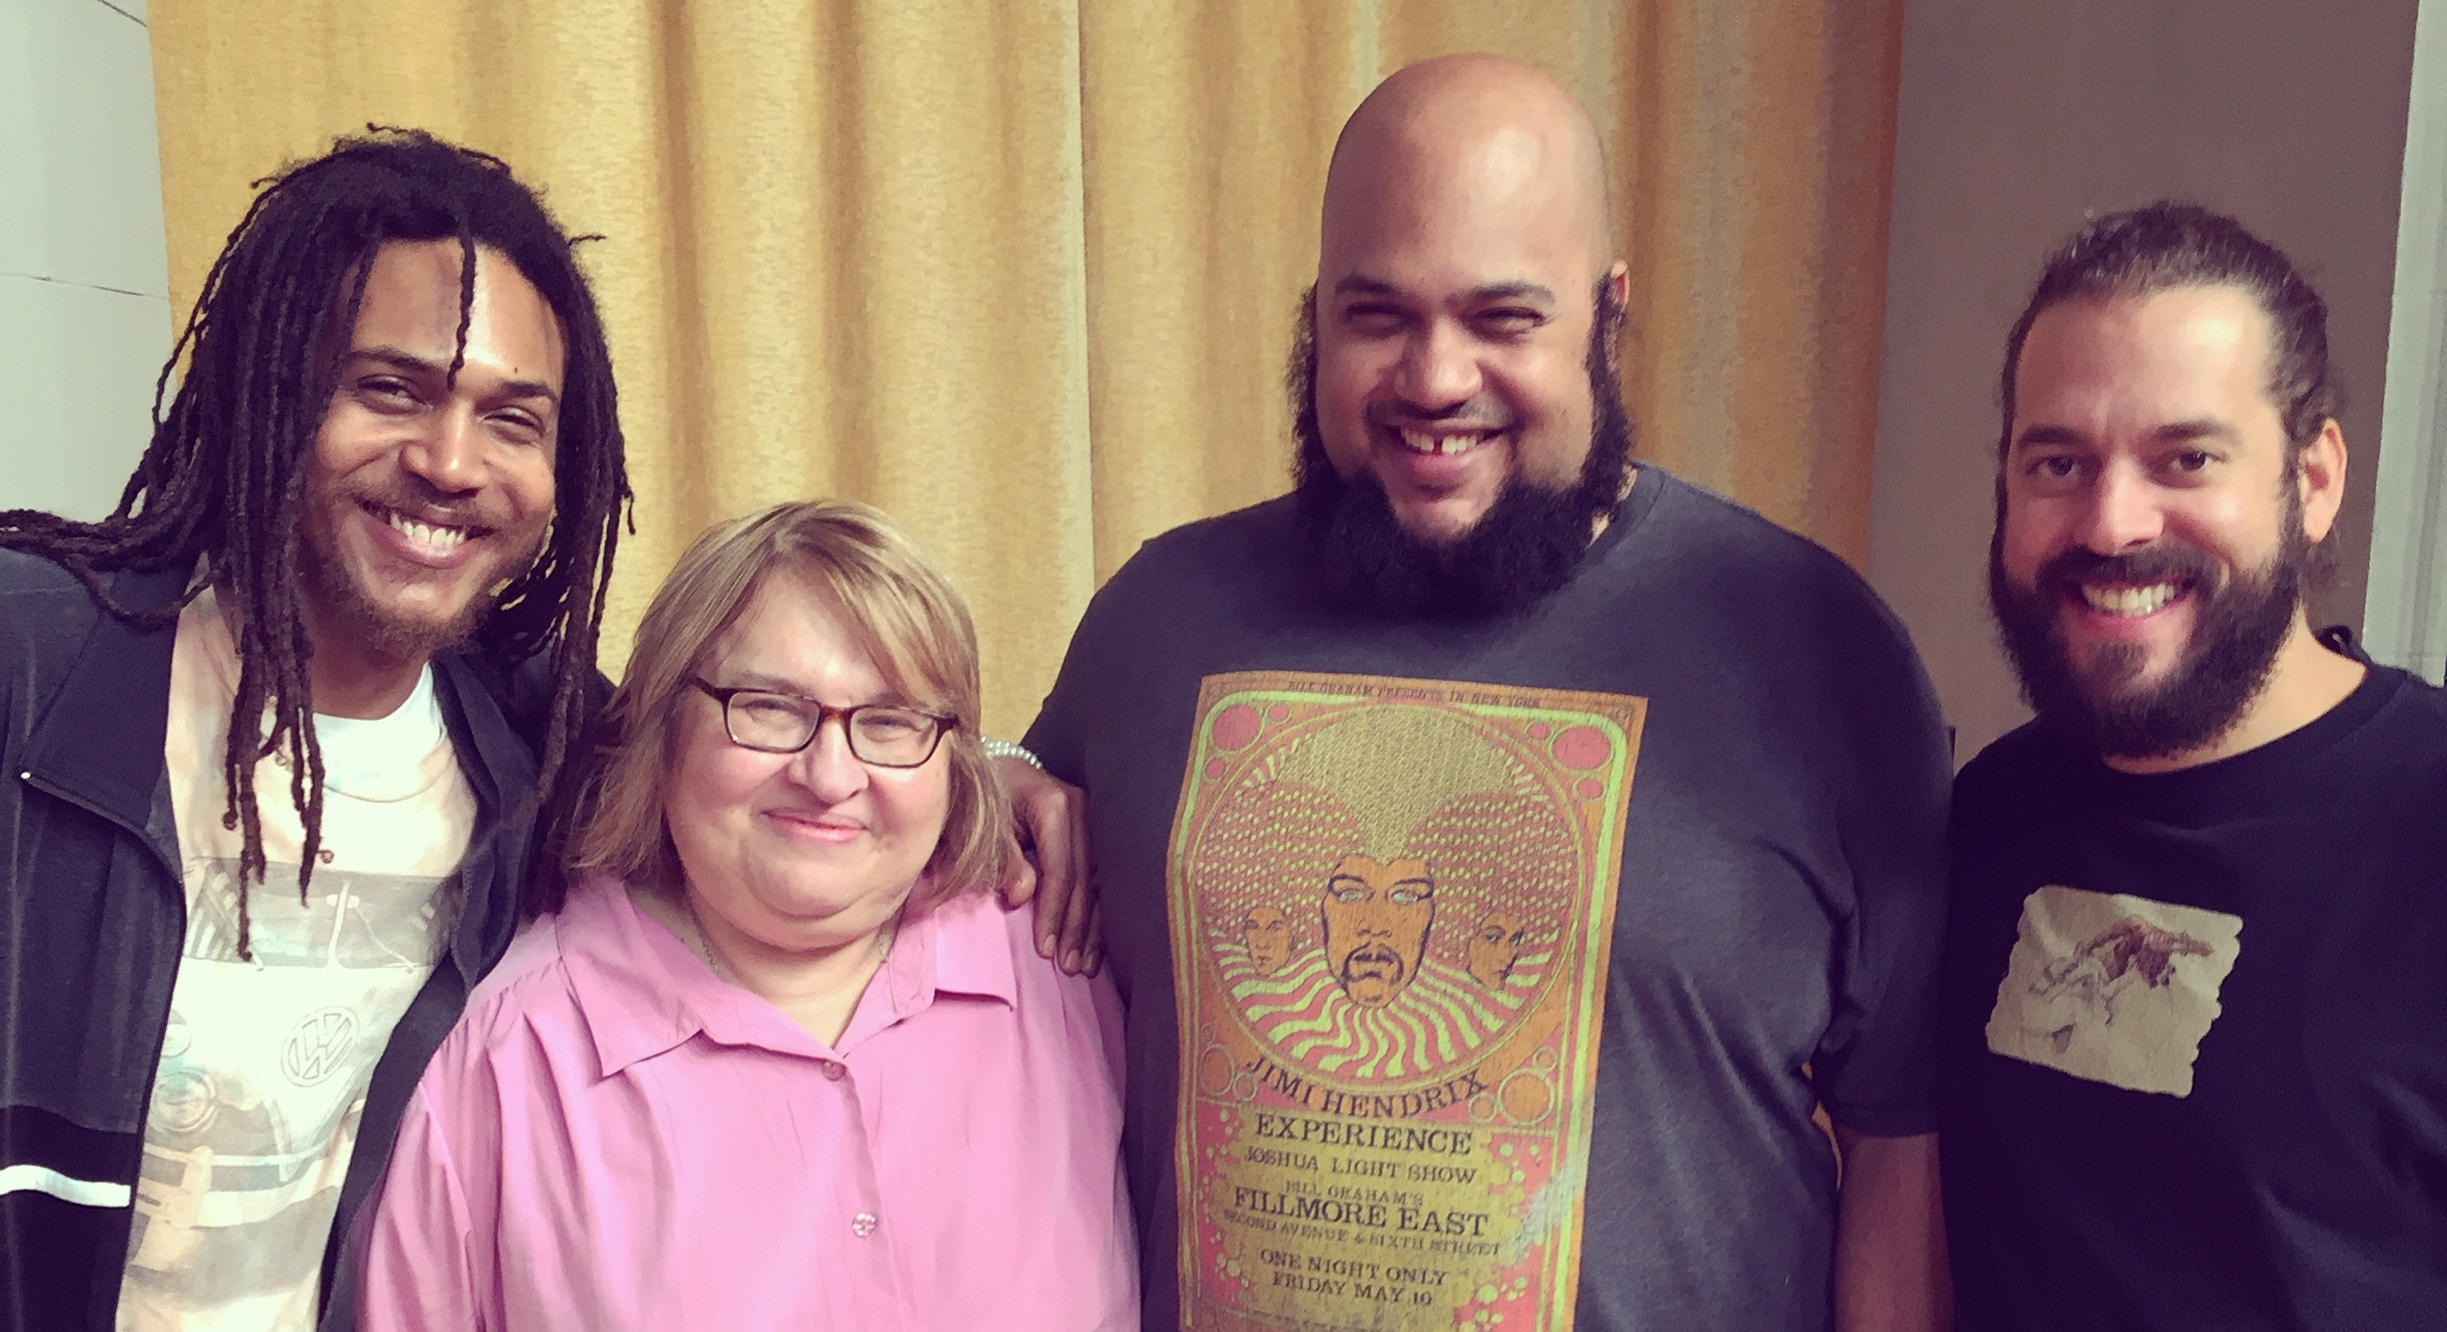 Sharon and the Atman Smith, Ali Smith and Andy Gonzales of the Holistic Life Foundation at their 2016 Caregiver's Retreat at Garrison Institute